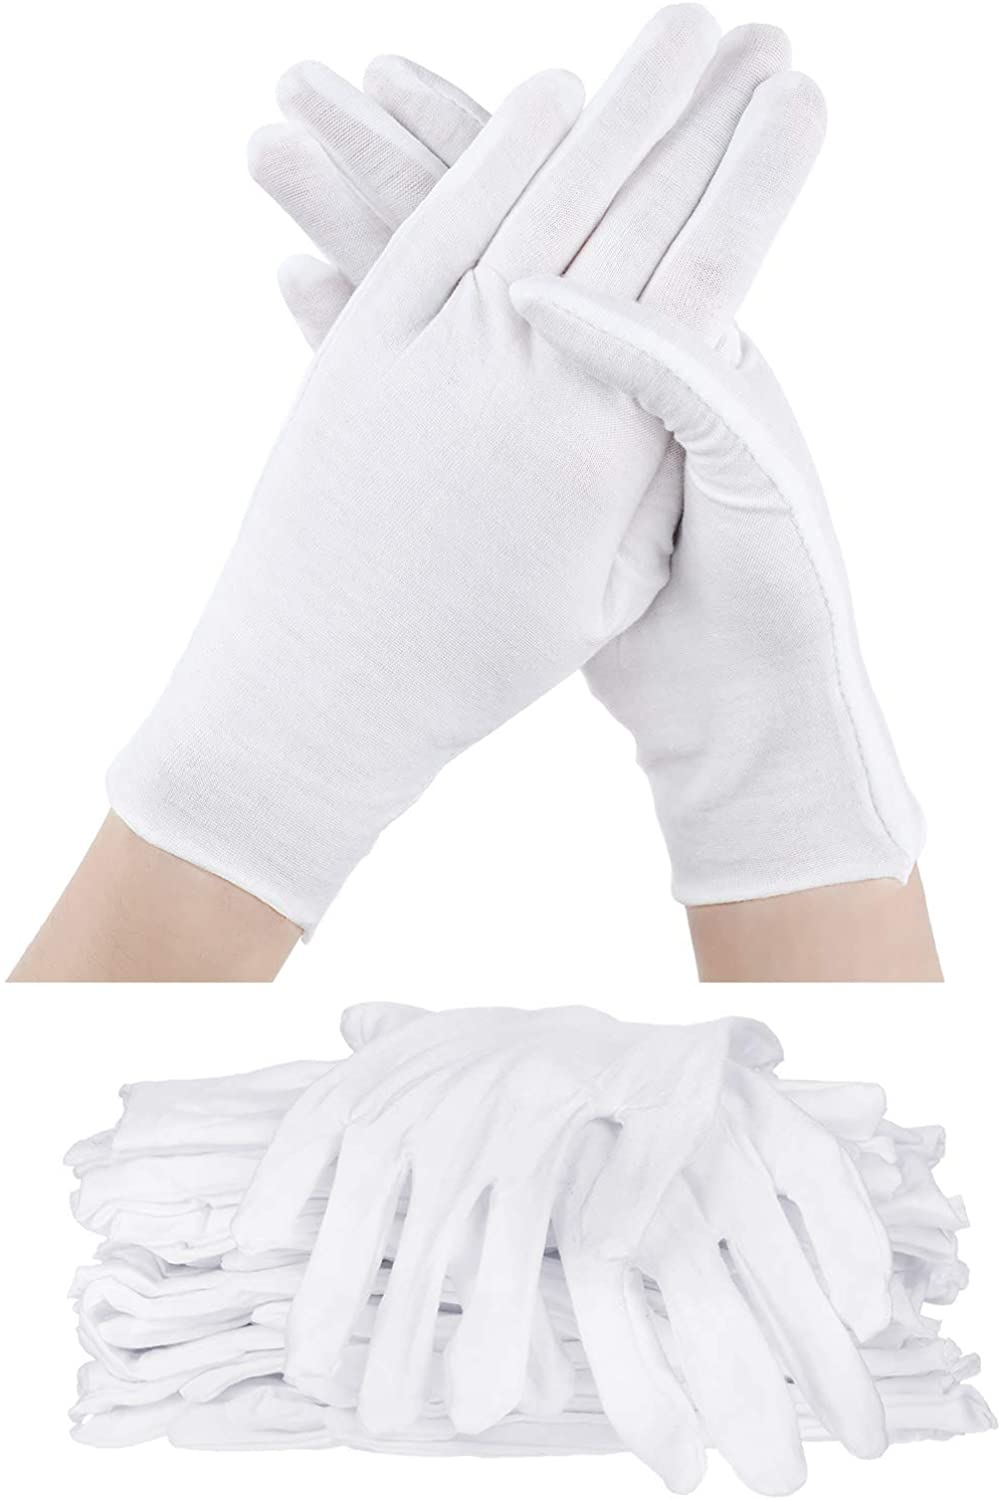 60 Pieces Glove Soft Stretchy Working Glove Costume Reusable Large Mitten